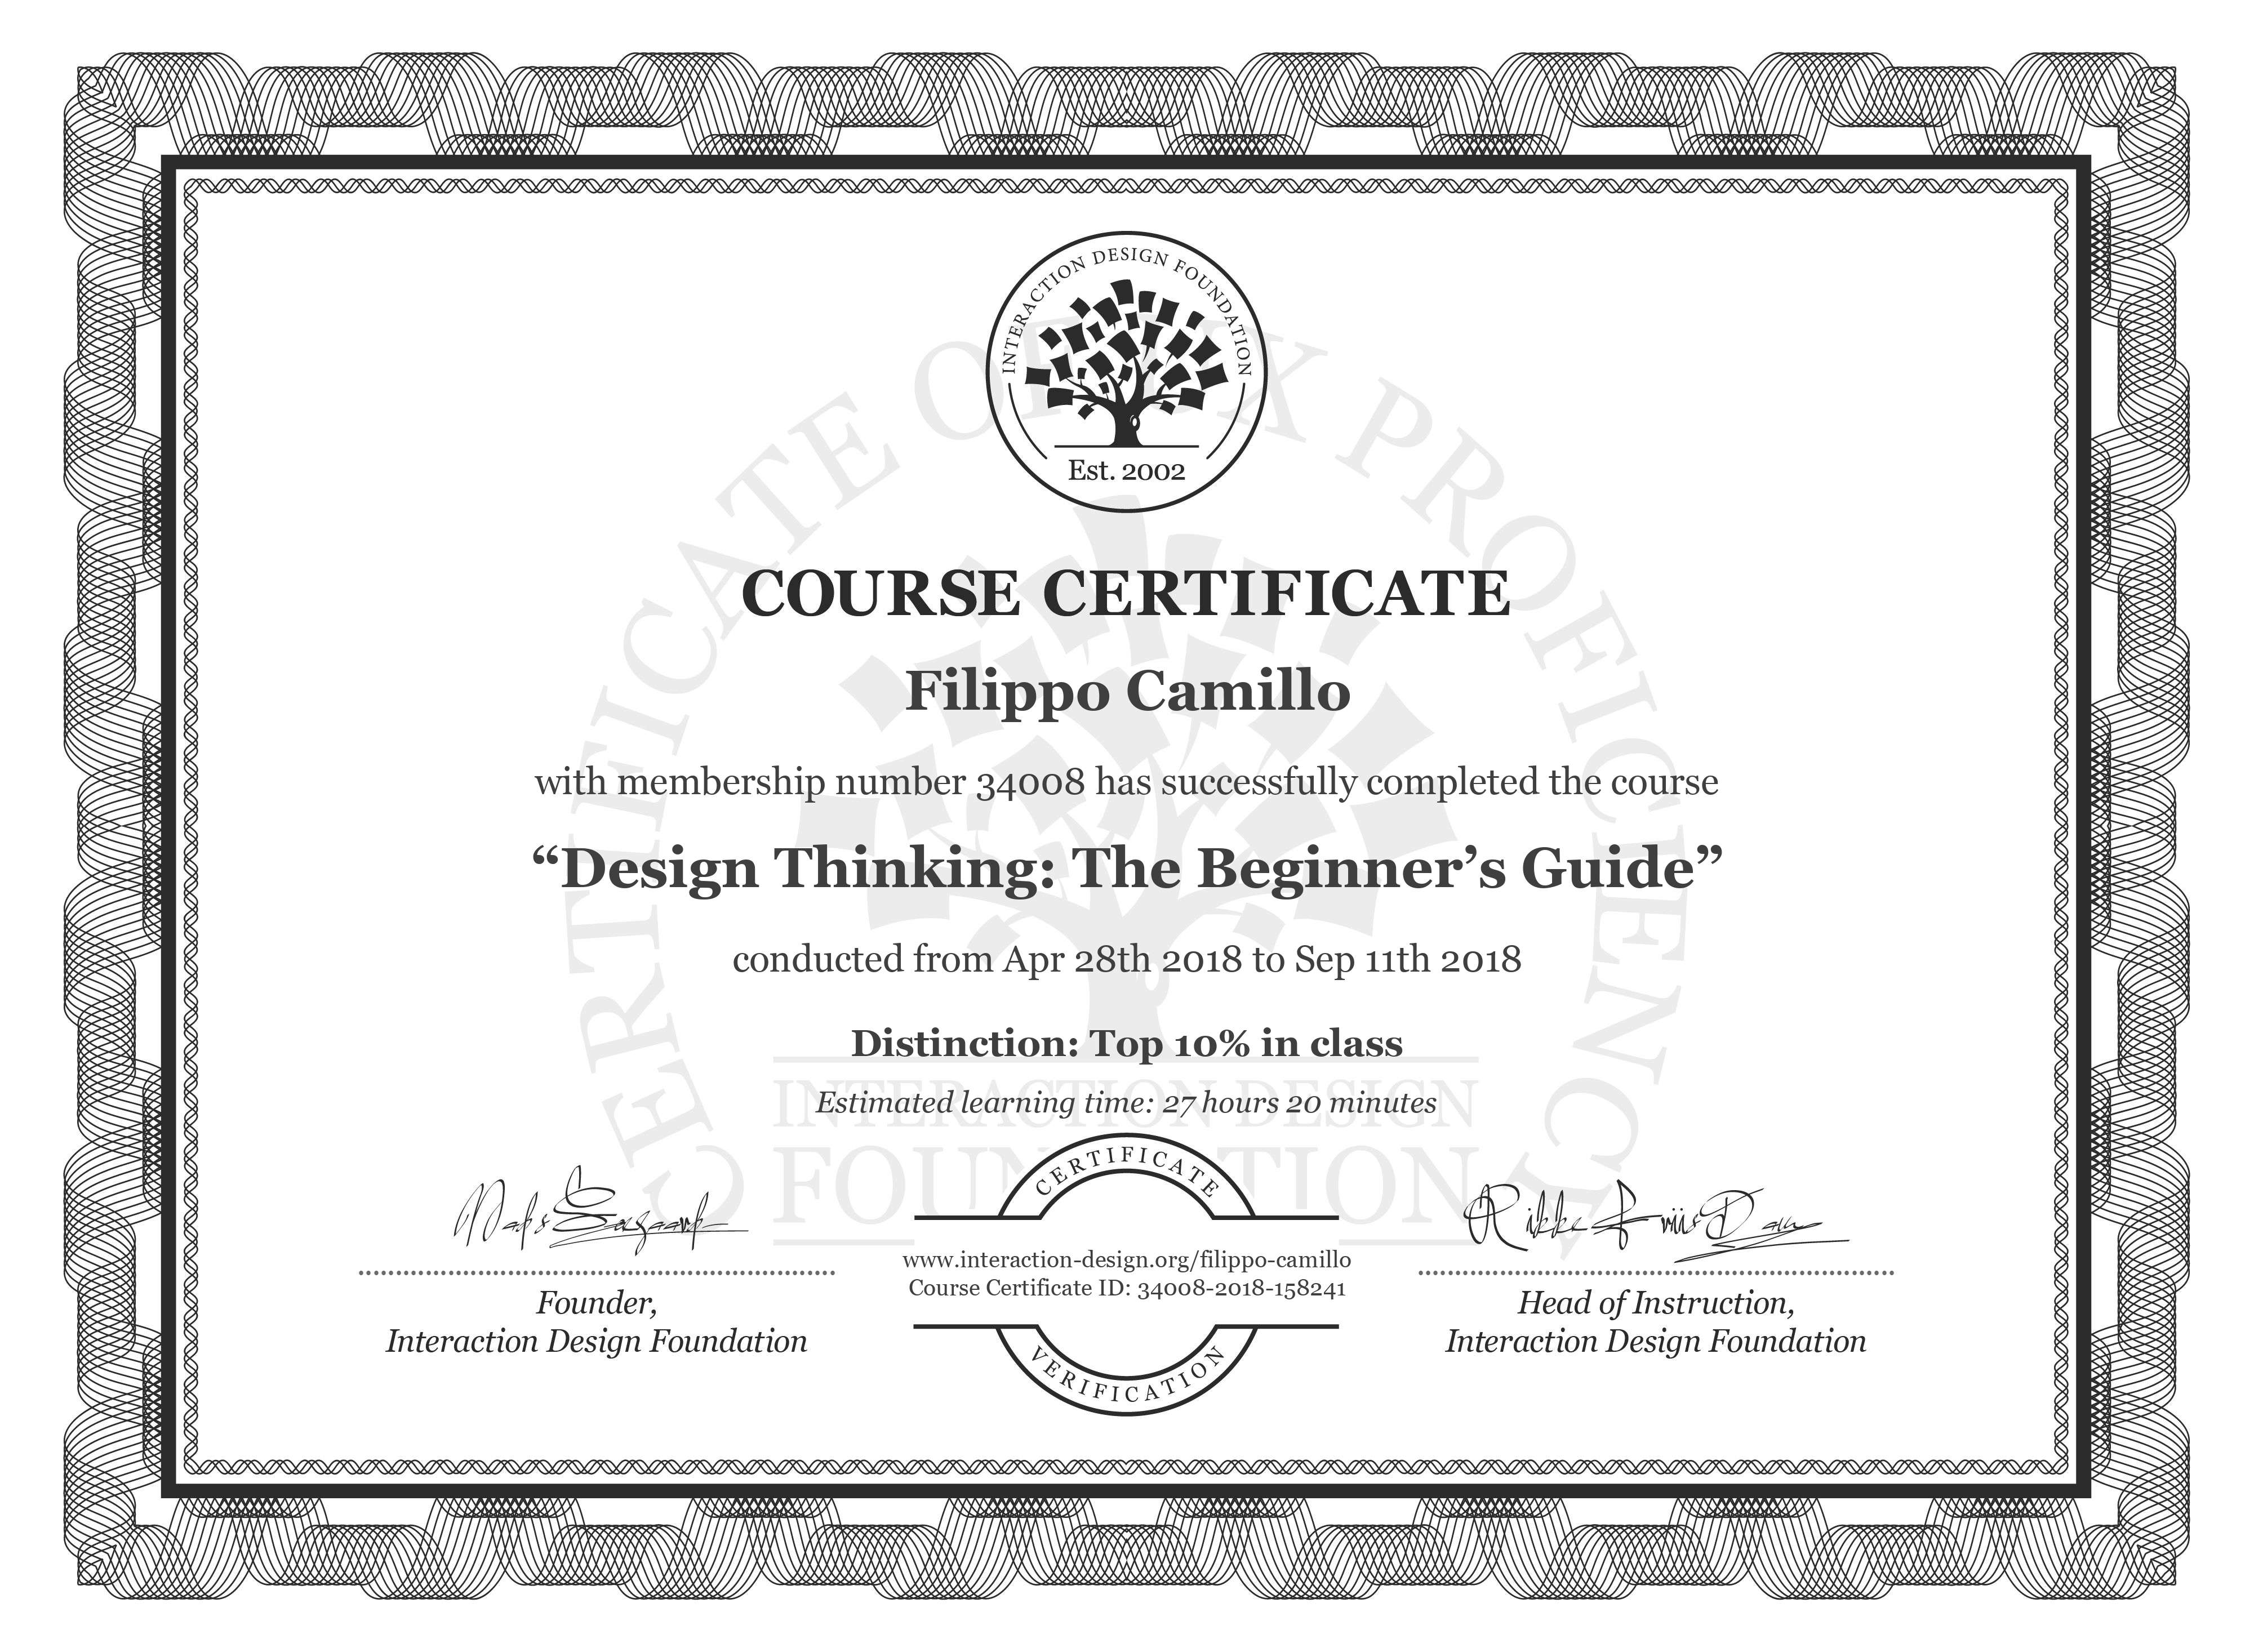 Filippo Camillo's Course Certificate: Design Thinking: The Beginner's Guide